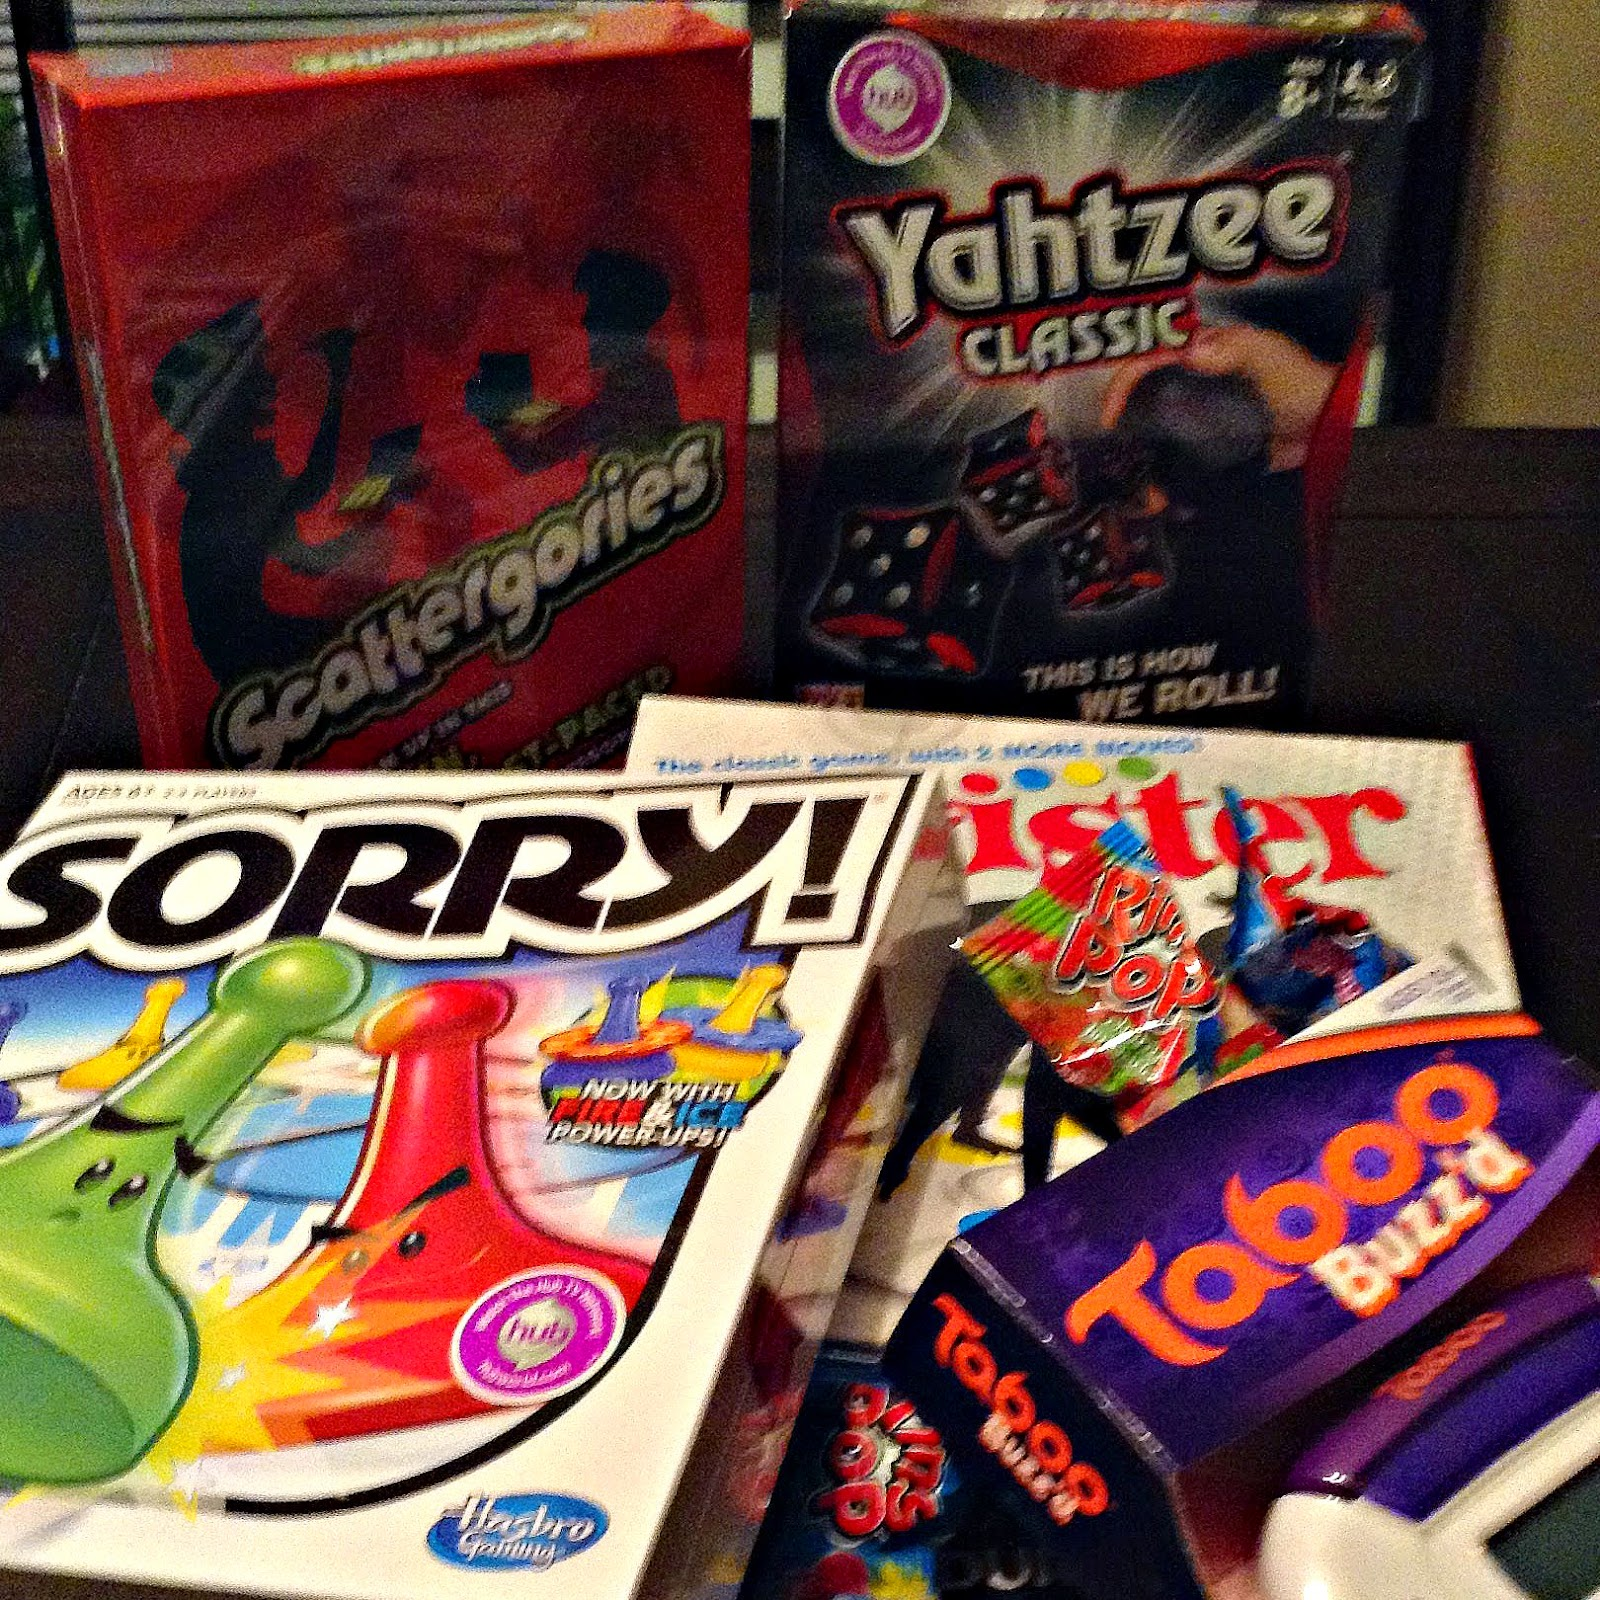 Hasbro Games - Scattergories, Yahtzee, Sorry!, Taboo Buzzd, Twister